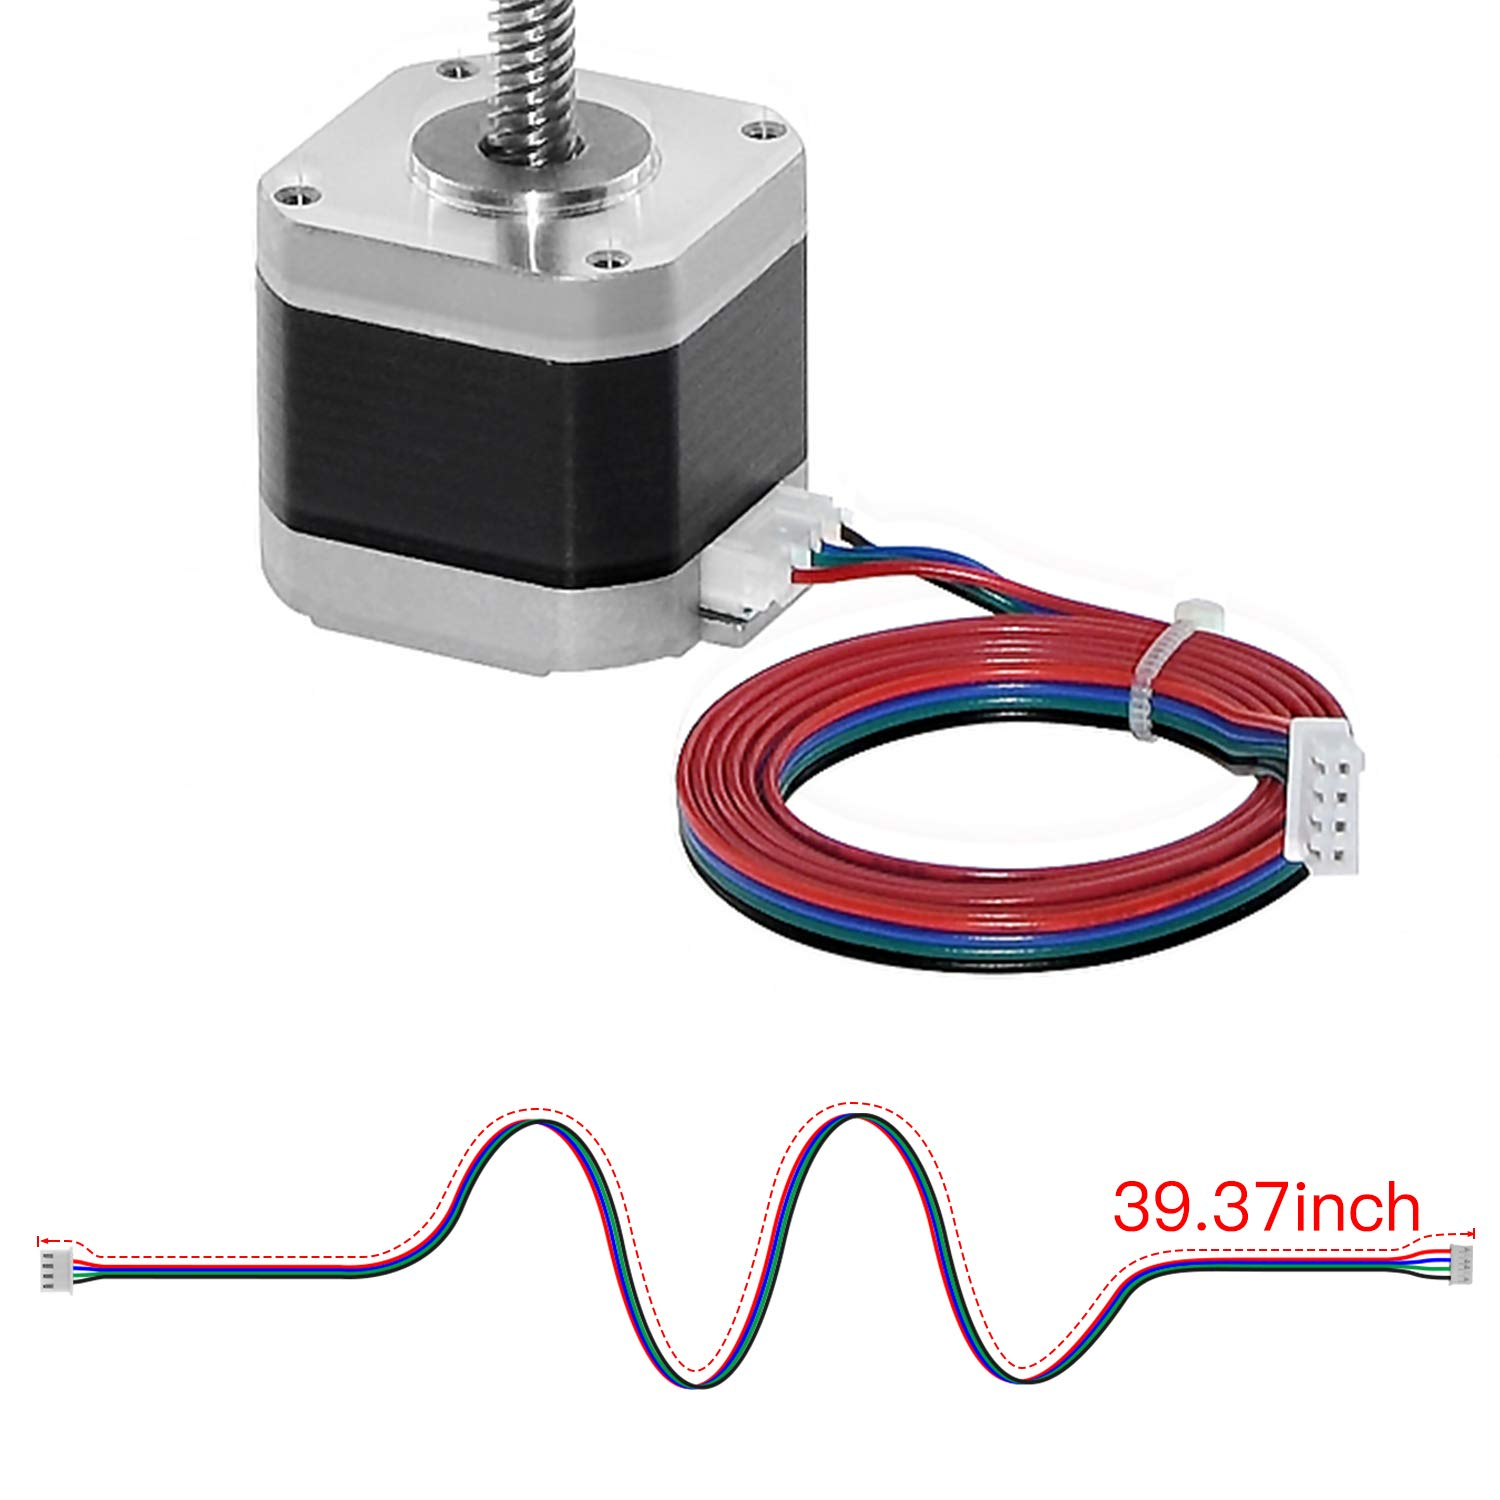 Usongshine 15pcs Stepper Motor Cable Connecting Cable 1M XH2.54 Terminal Motor Link 4pin to 6pin for 3D Printer Stepper Motor